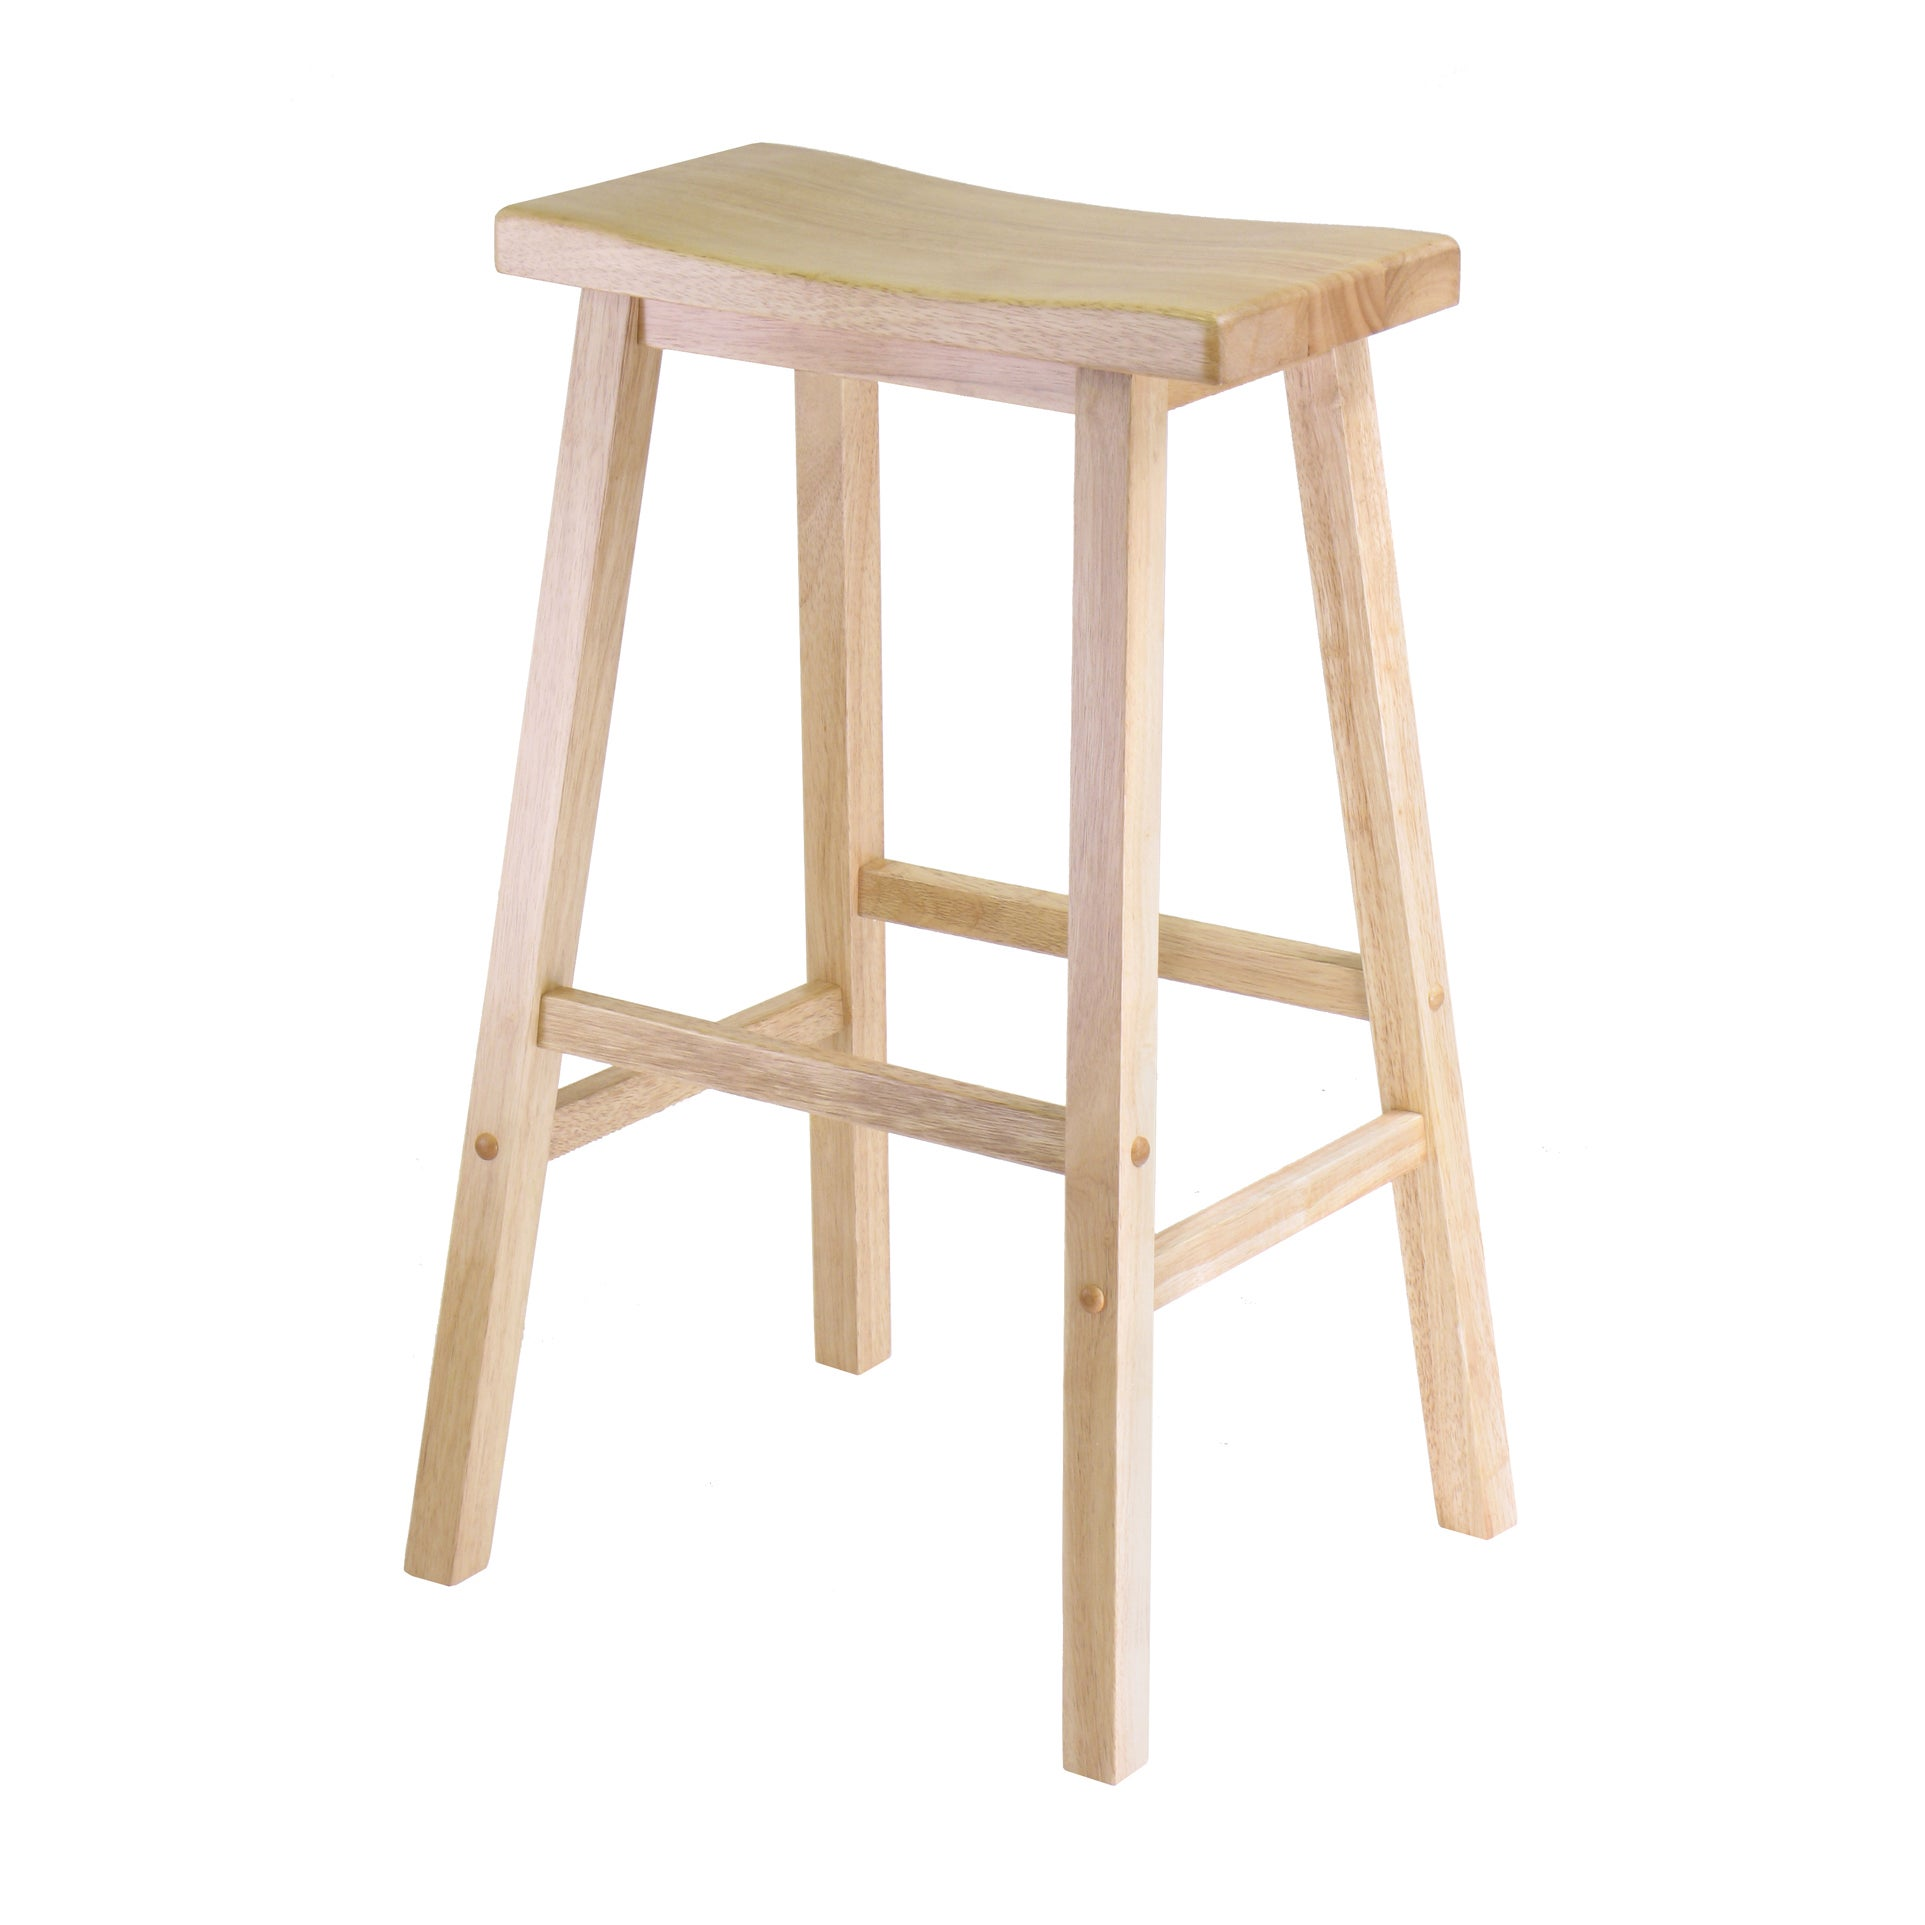 Marvelous Satori 29 Saddle Seat Bar Stool Beech Caraccident5 Cool Chair Designs And Ideas Caraccident5Info